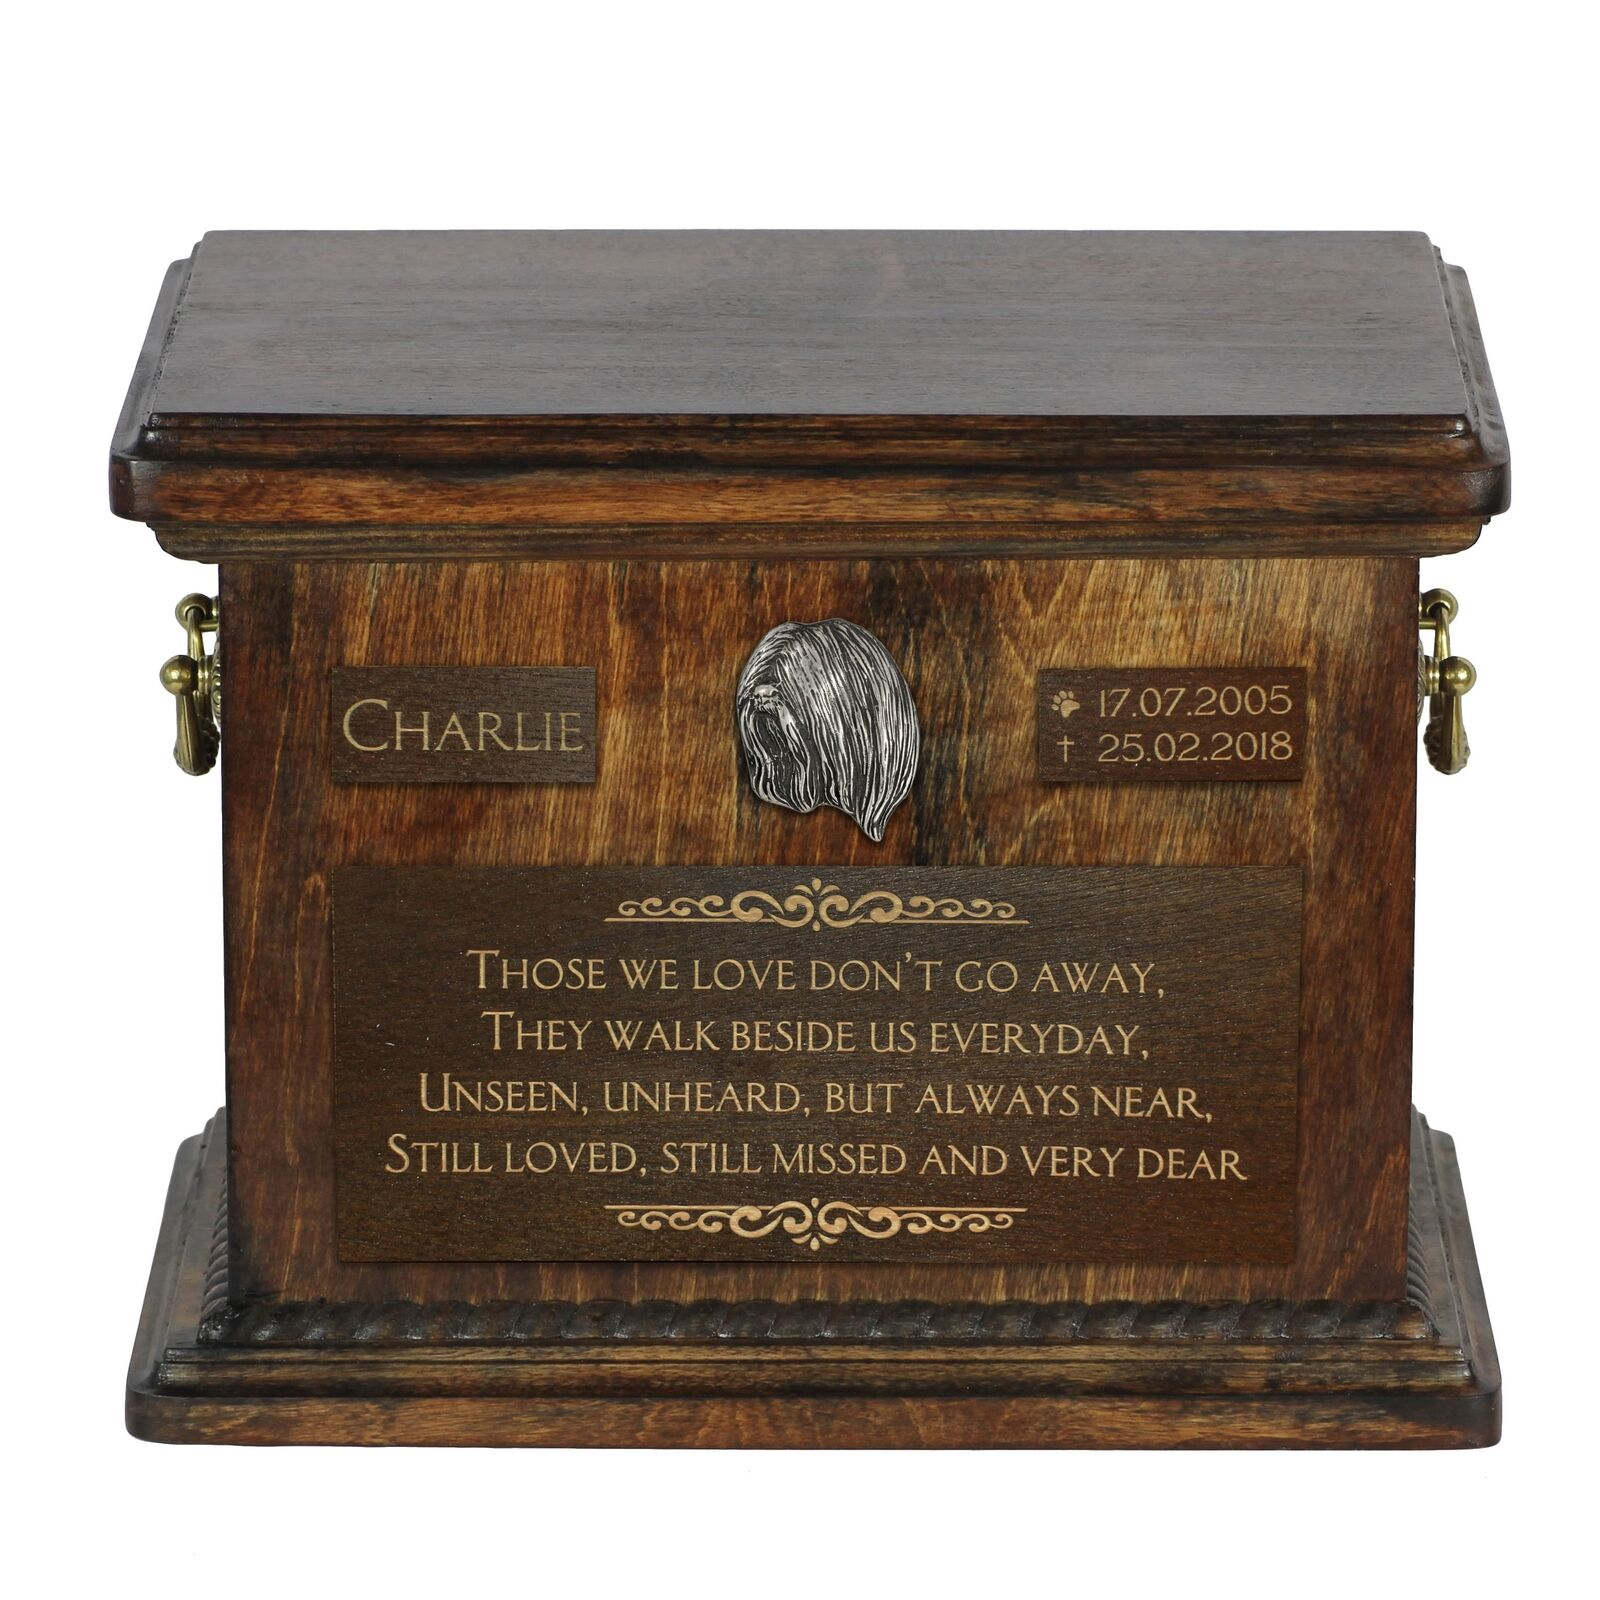 Lhasa Apso  Urn for dog's ashes with image of a dog, Art Dog